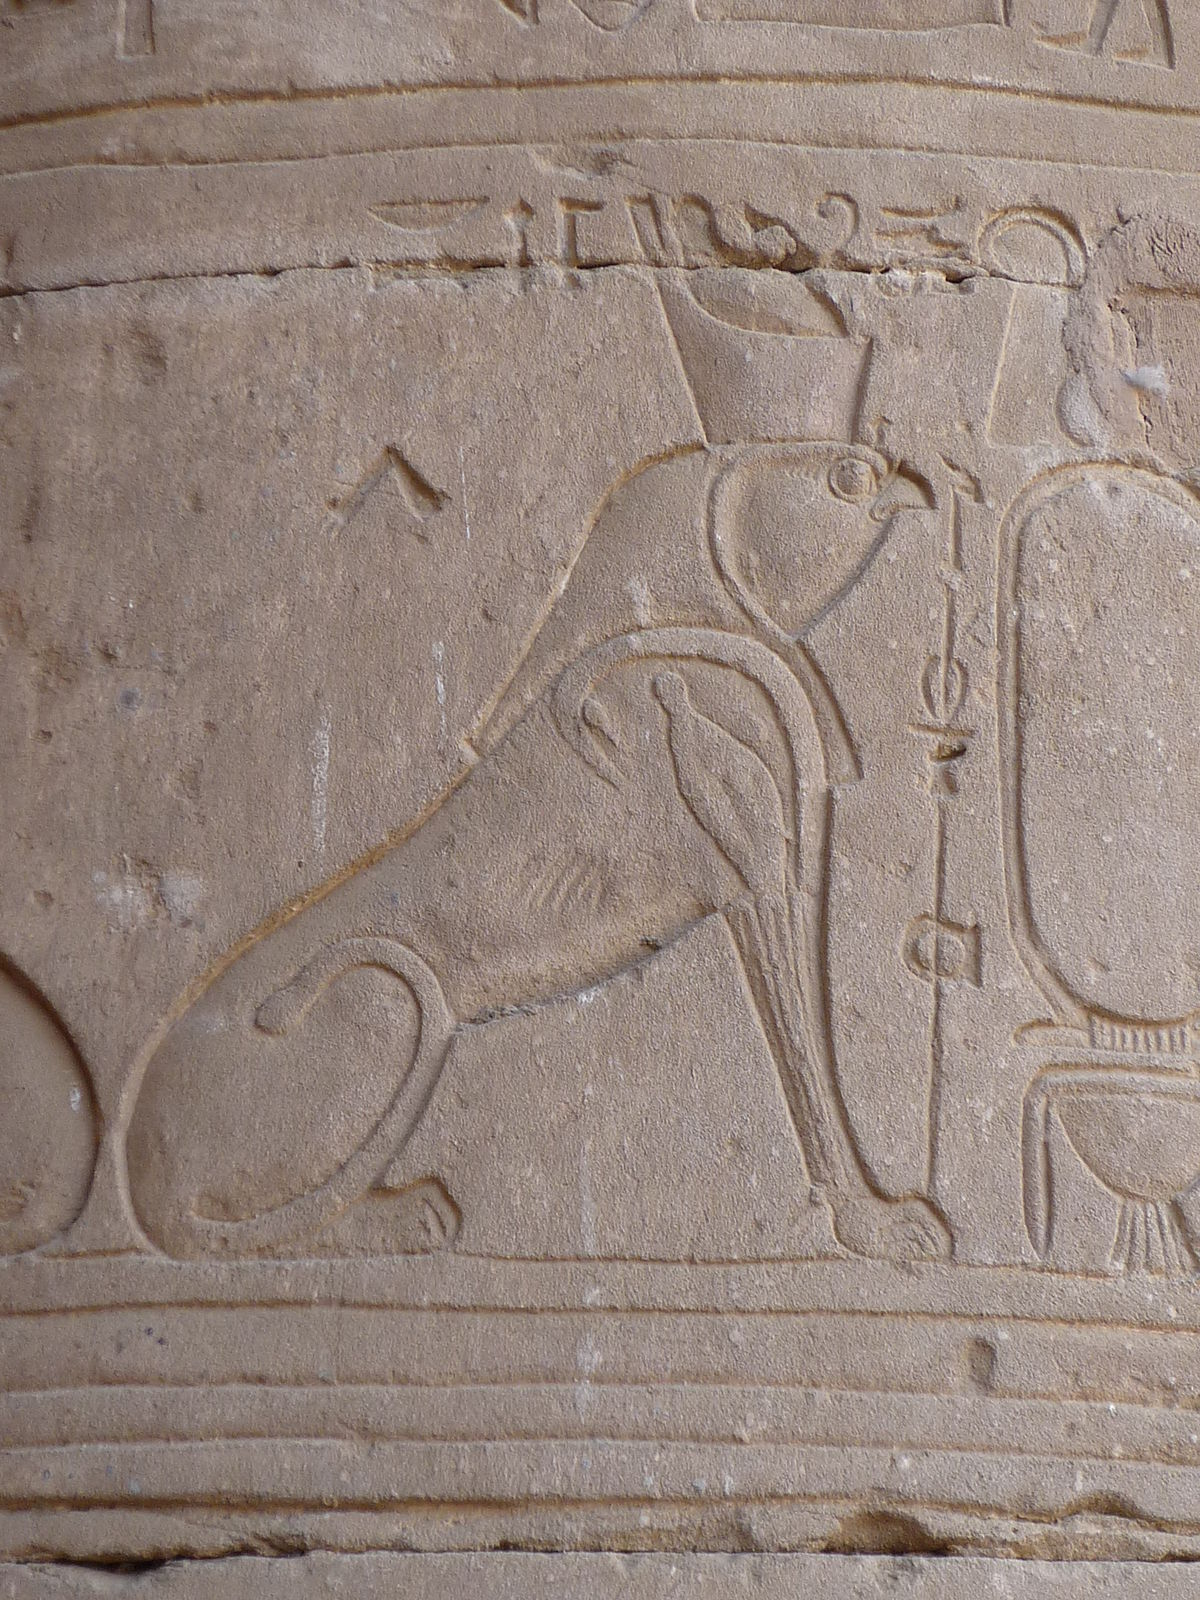 Hieracosphinx - Wikipe...